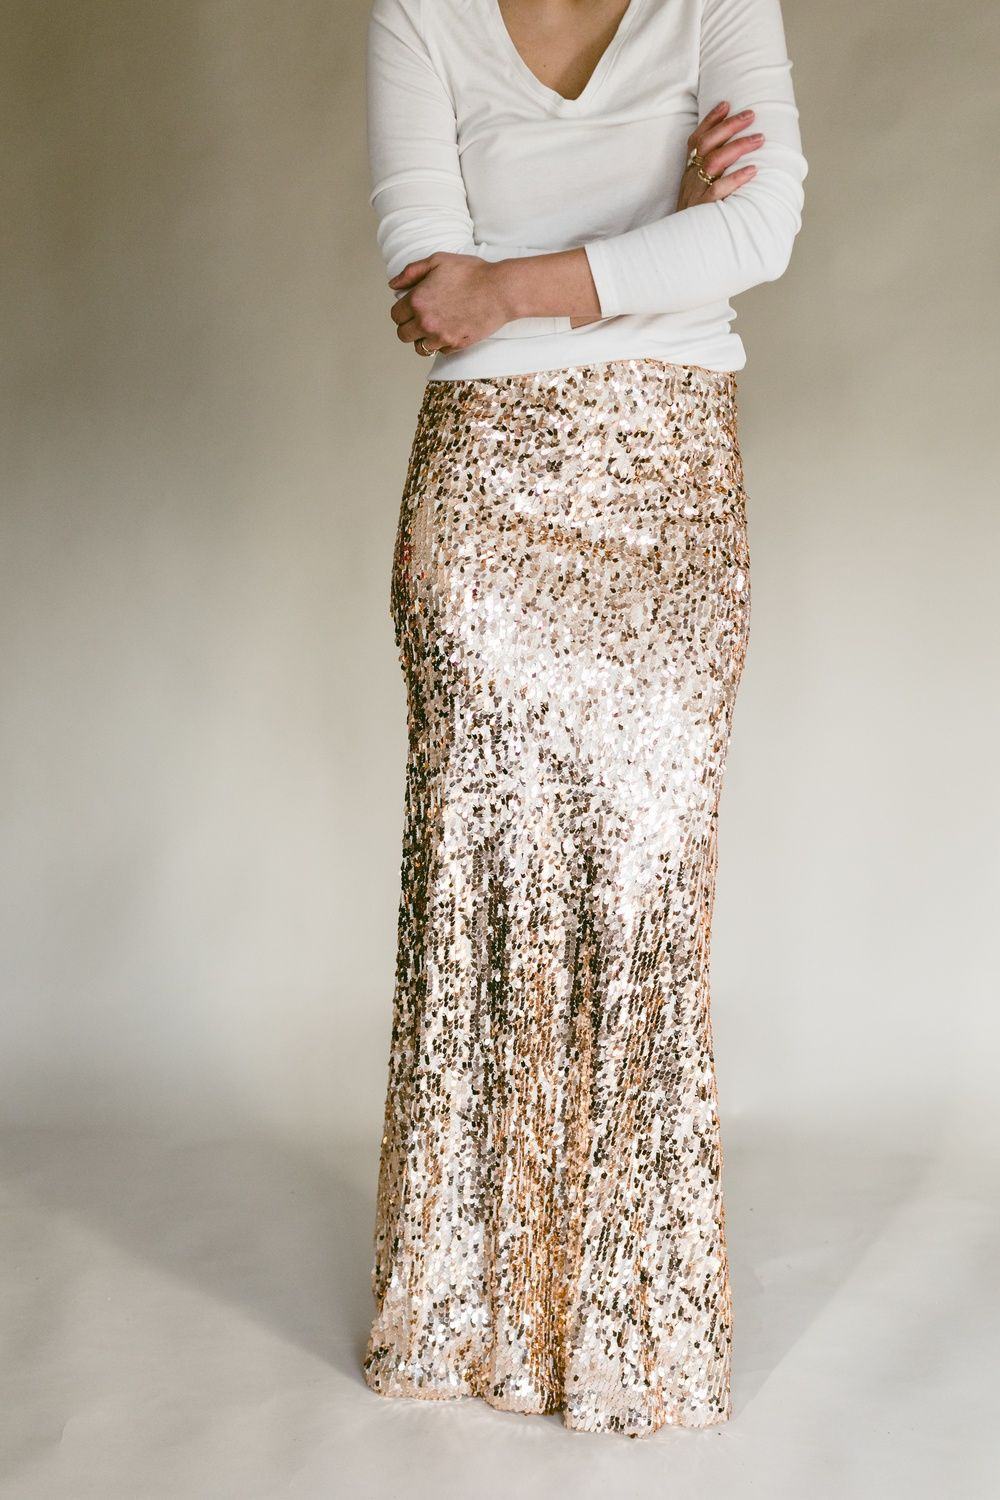 d737e647a0c Obsessed with sequin maxi skirts  So are we. What we dont love so much is  the price tag that they often come with